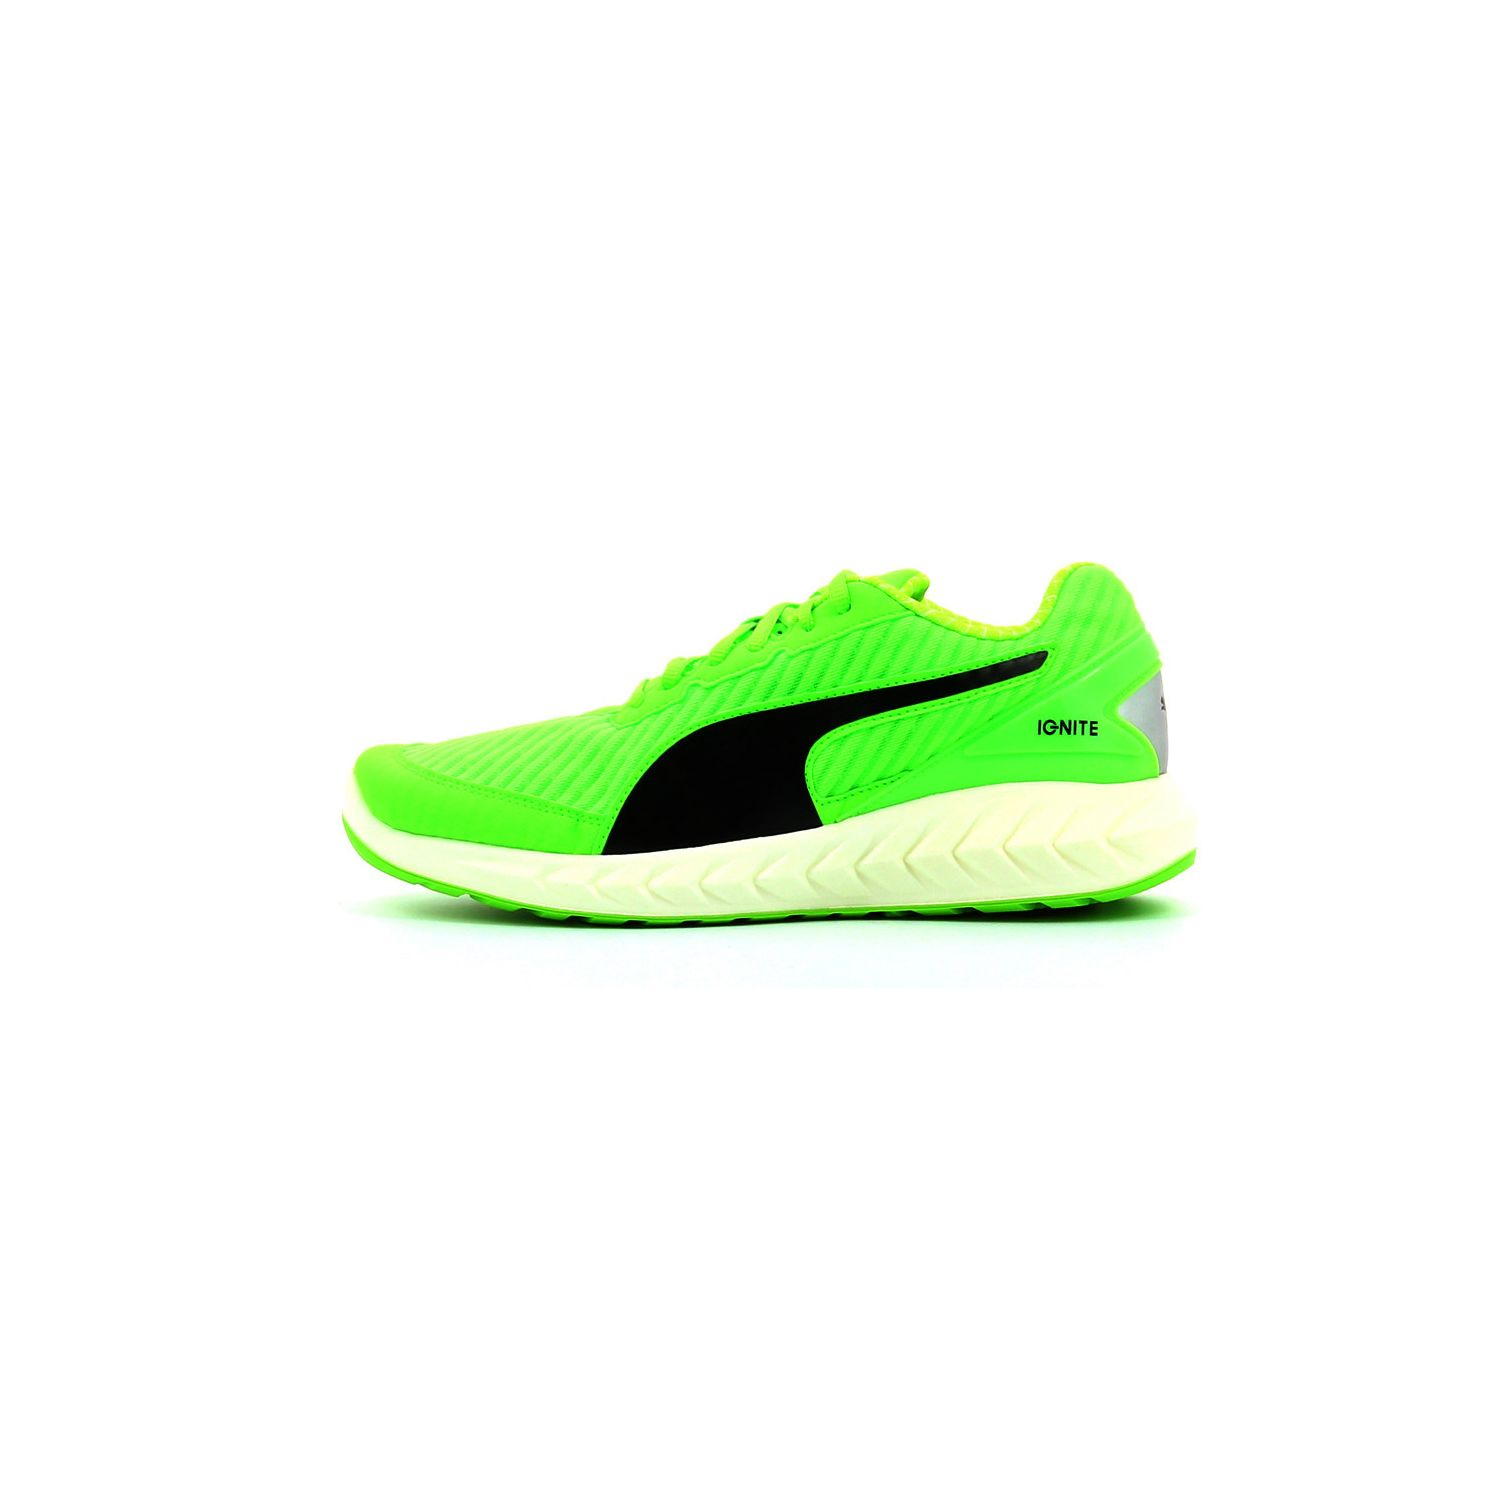 reputable site e8cda 89ee8 Ultimate Chaussure Running Multicolore Pas Cher Puma Ignite EzqCSCw